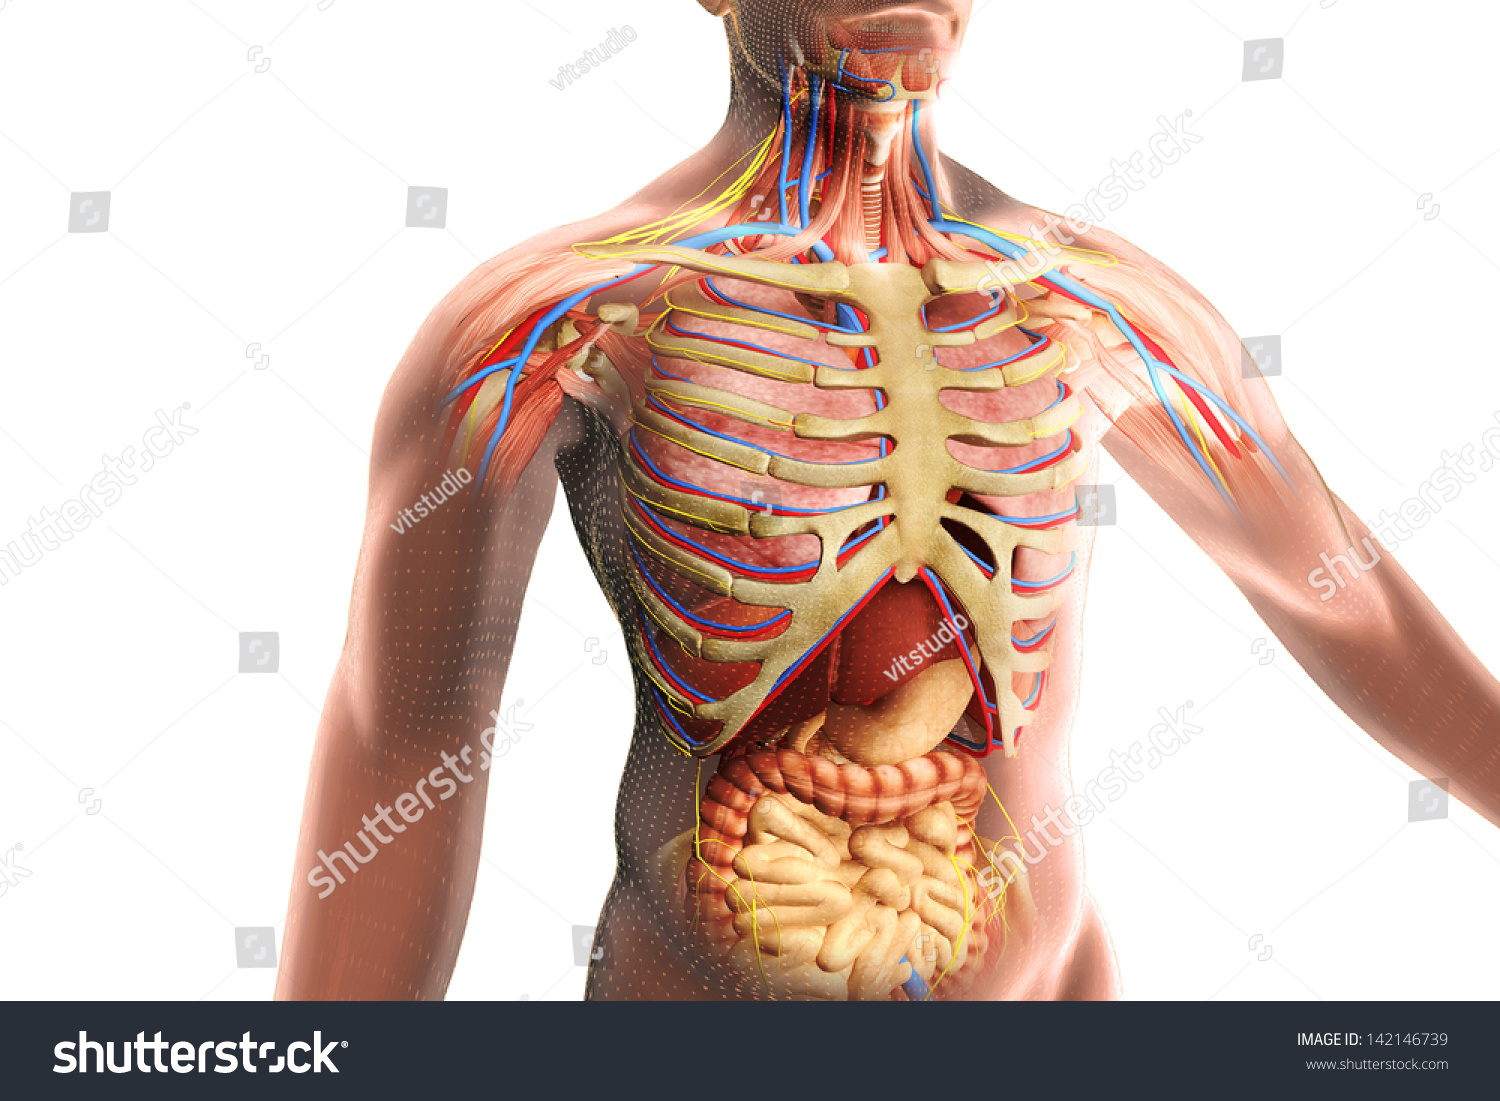 Stock Photo Human Body With Internal Organs  posite By Stomach Liver Pancreas Spleen Lung Kidney Colon